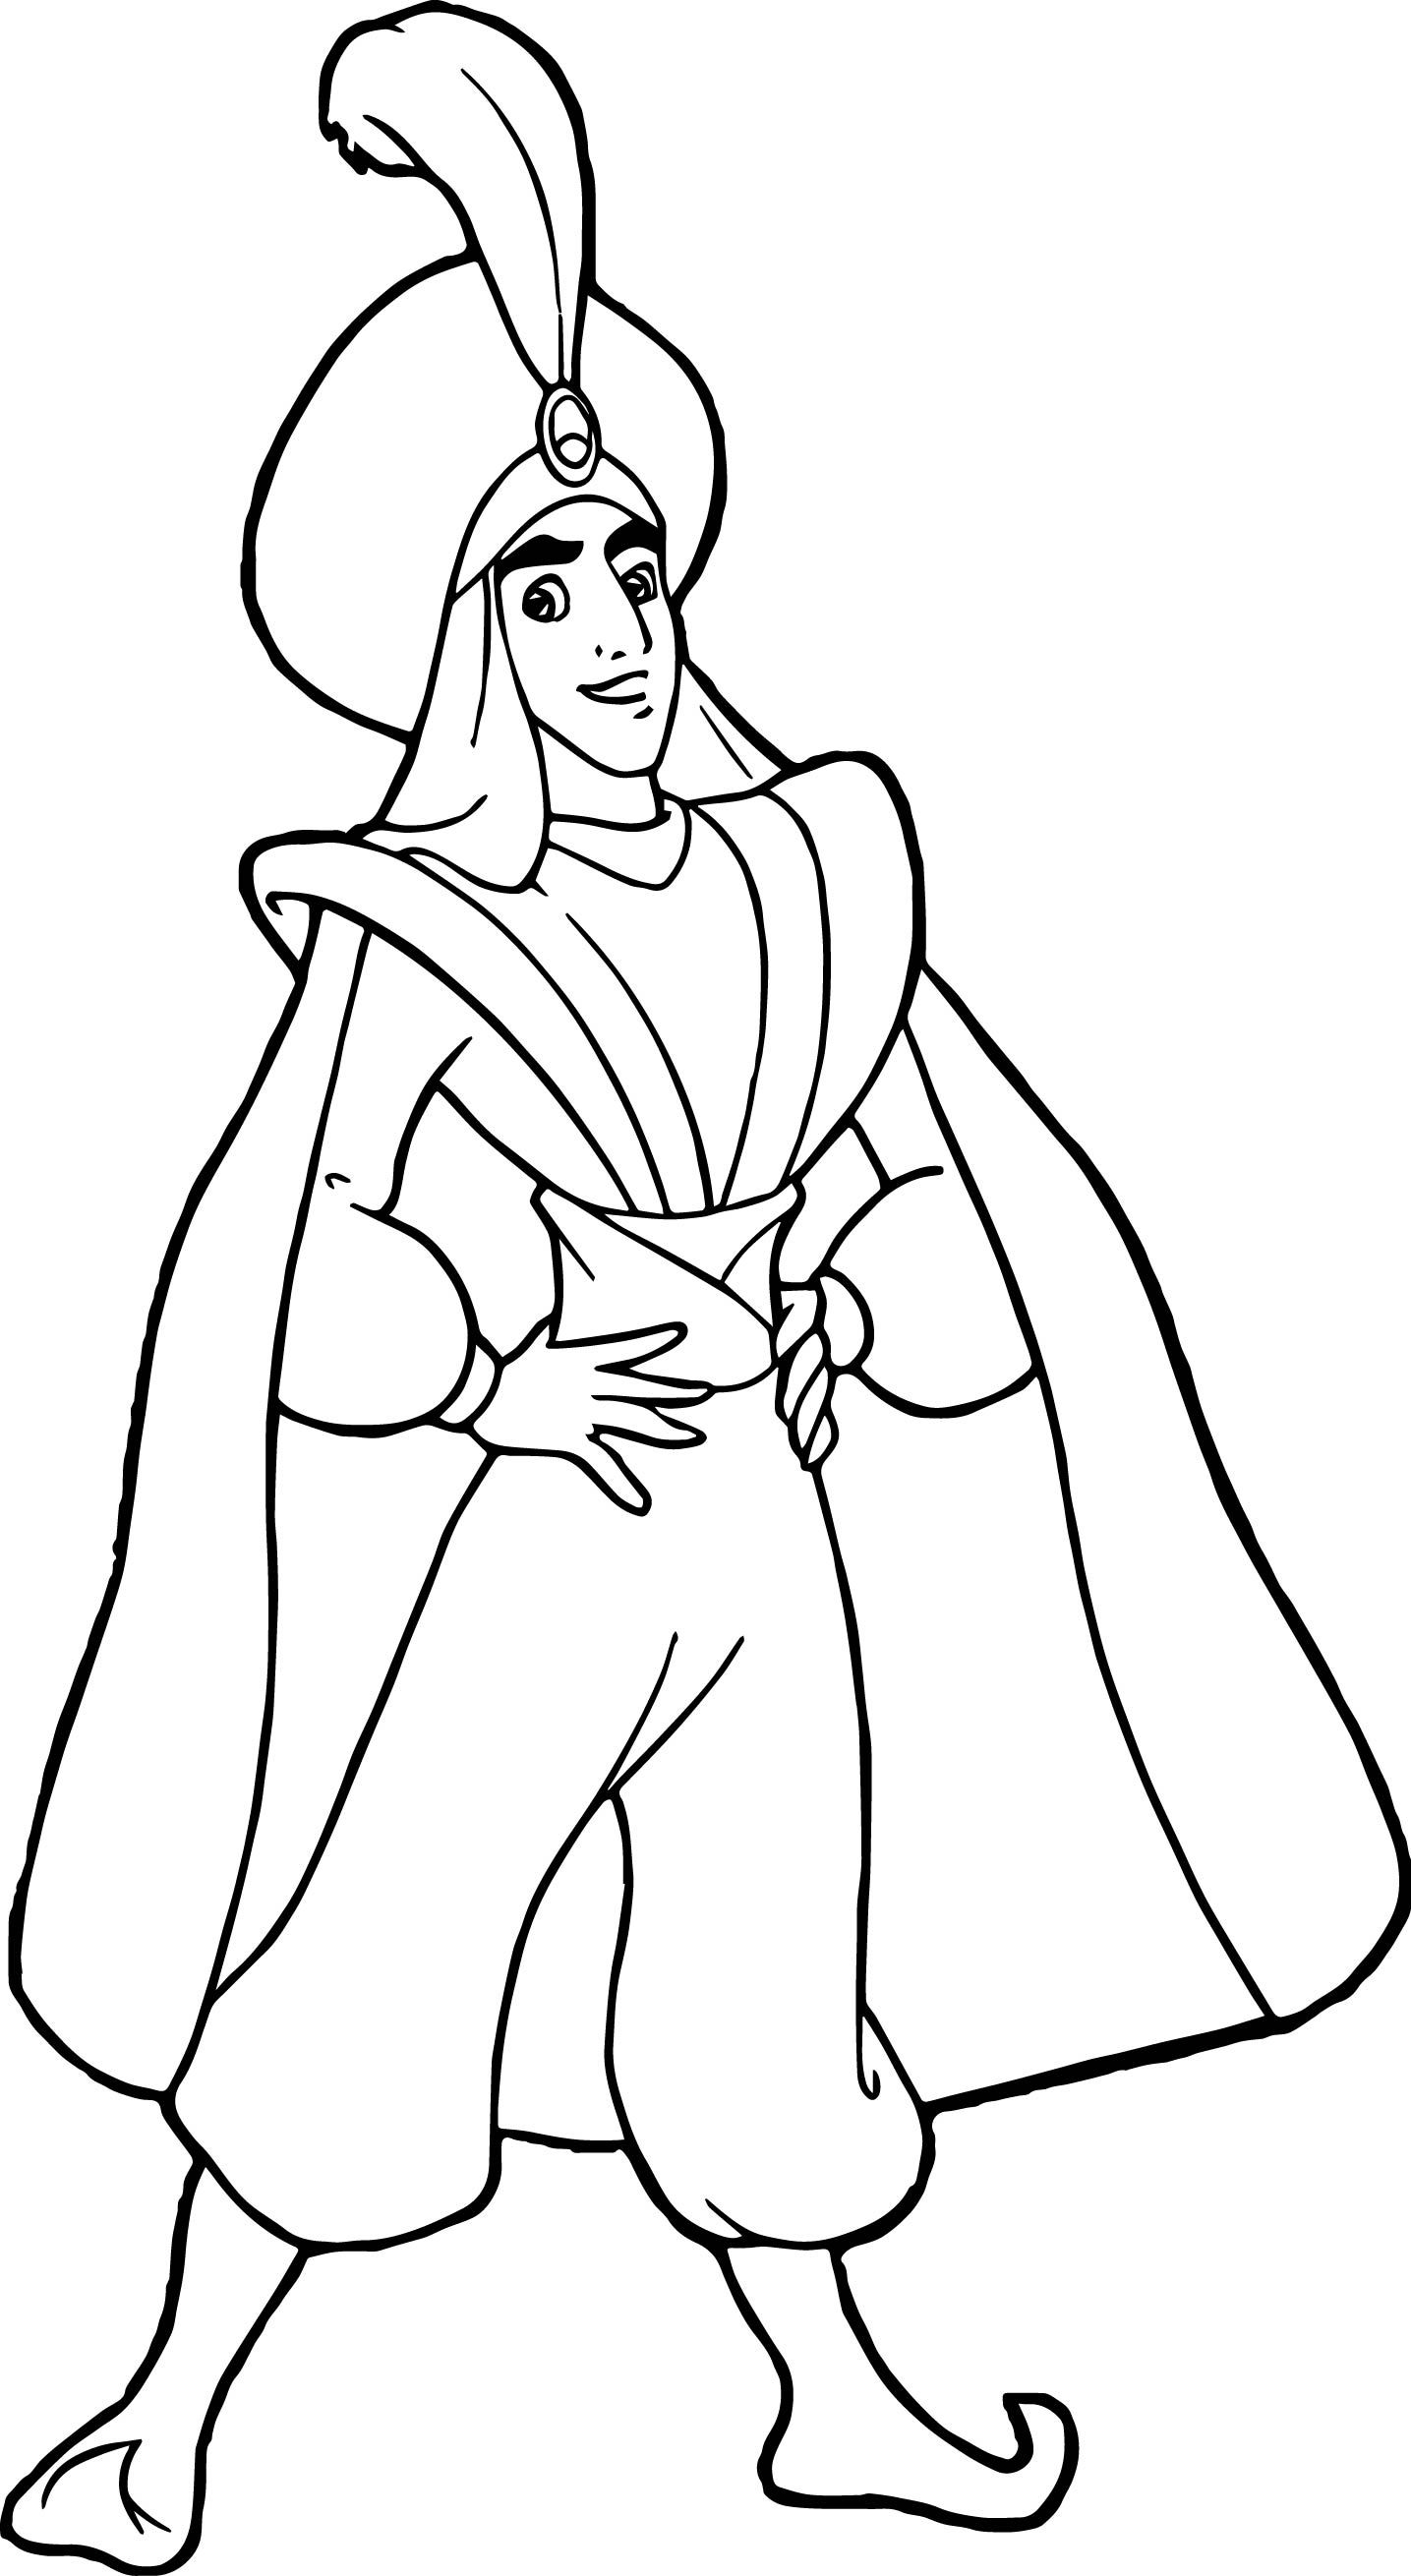 Cool Prince Ali Aladdin Coloring Page Cartoon Coloring Pages Disney Princess Coloring Pages Barbie Coloring Pages